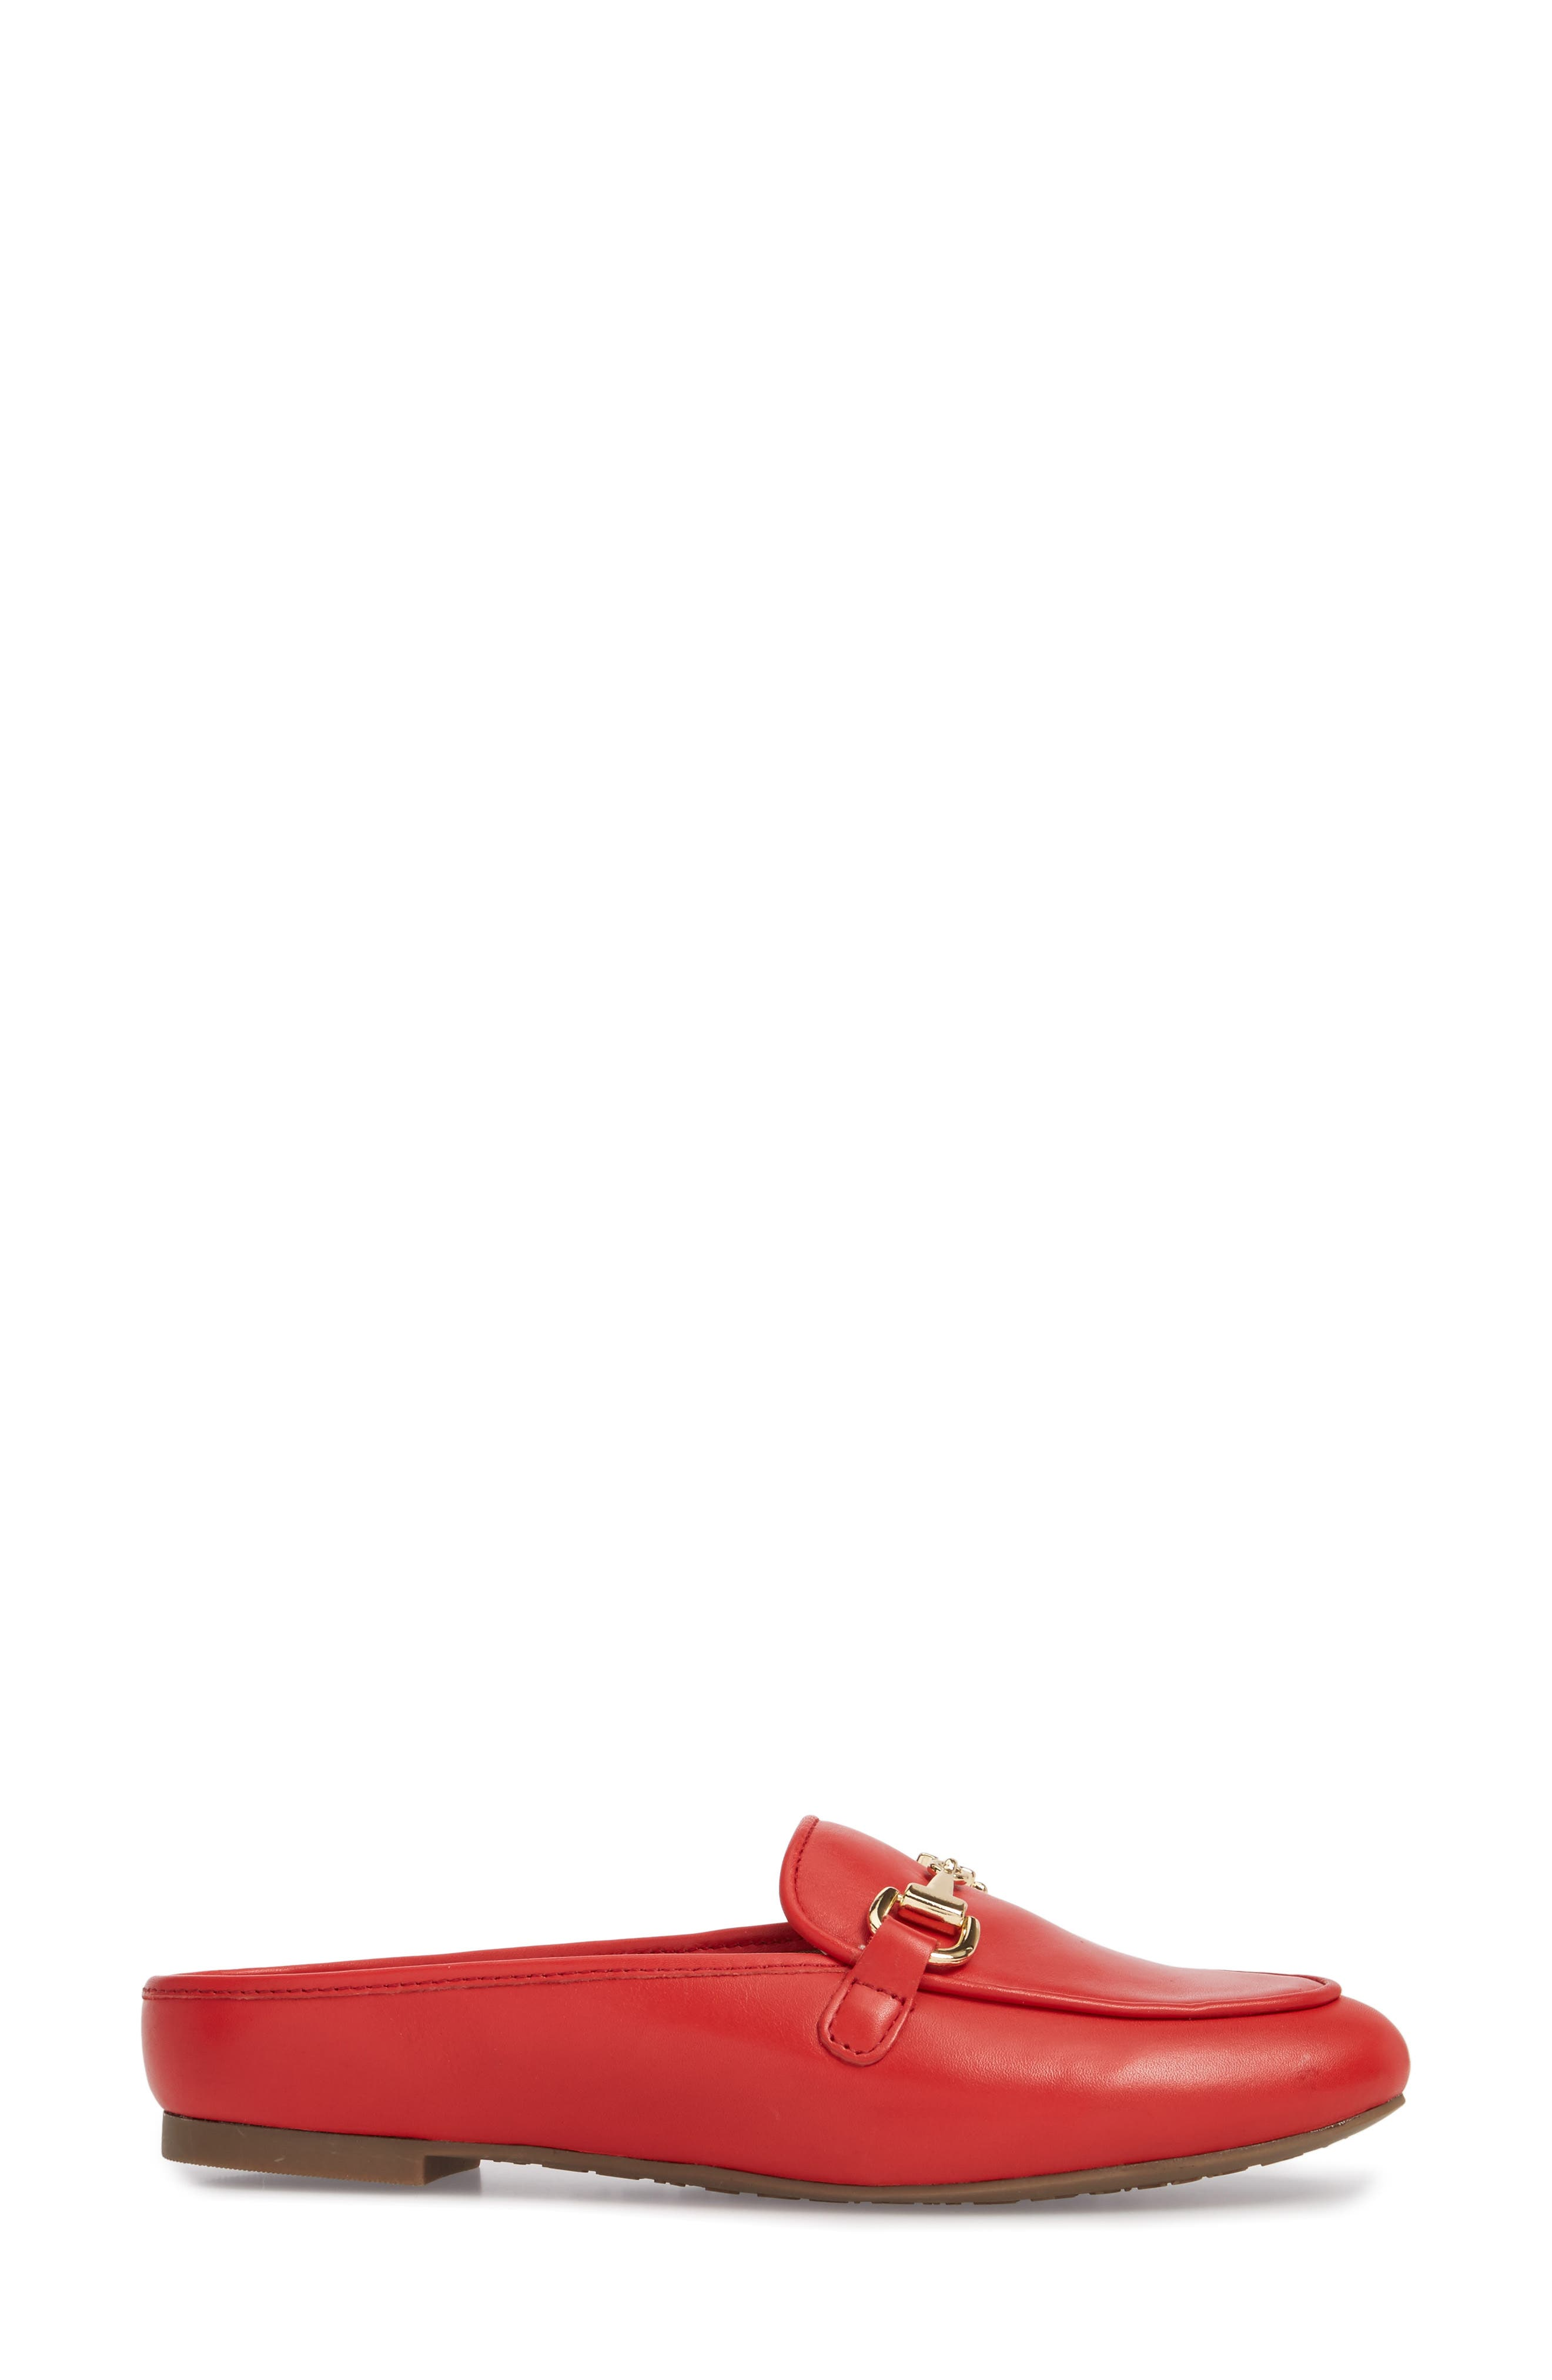 Adeline Mule,                             Alternate thumbnail 3, color,                             Red Leather